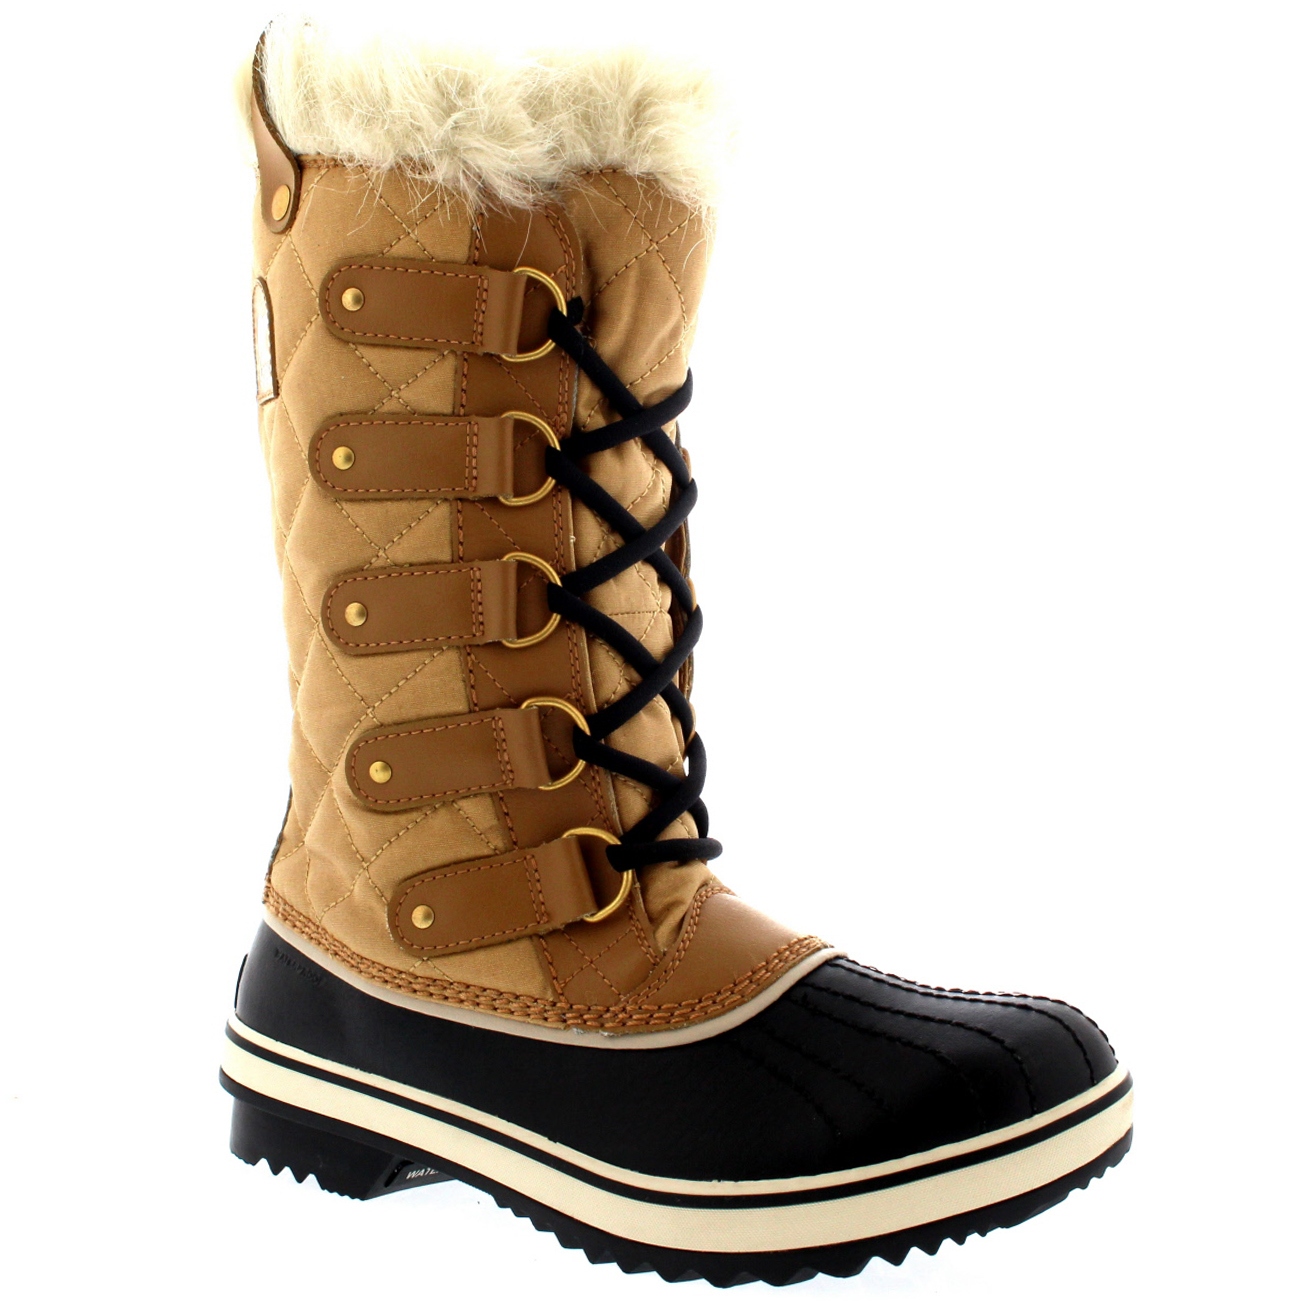 New Sorel Caribou Women39s Winter Snow Boots UK 85 Tusk